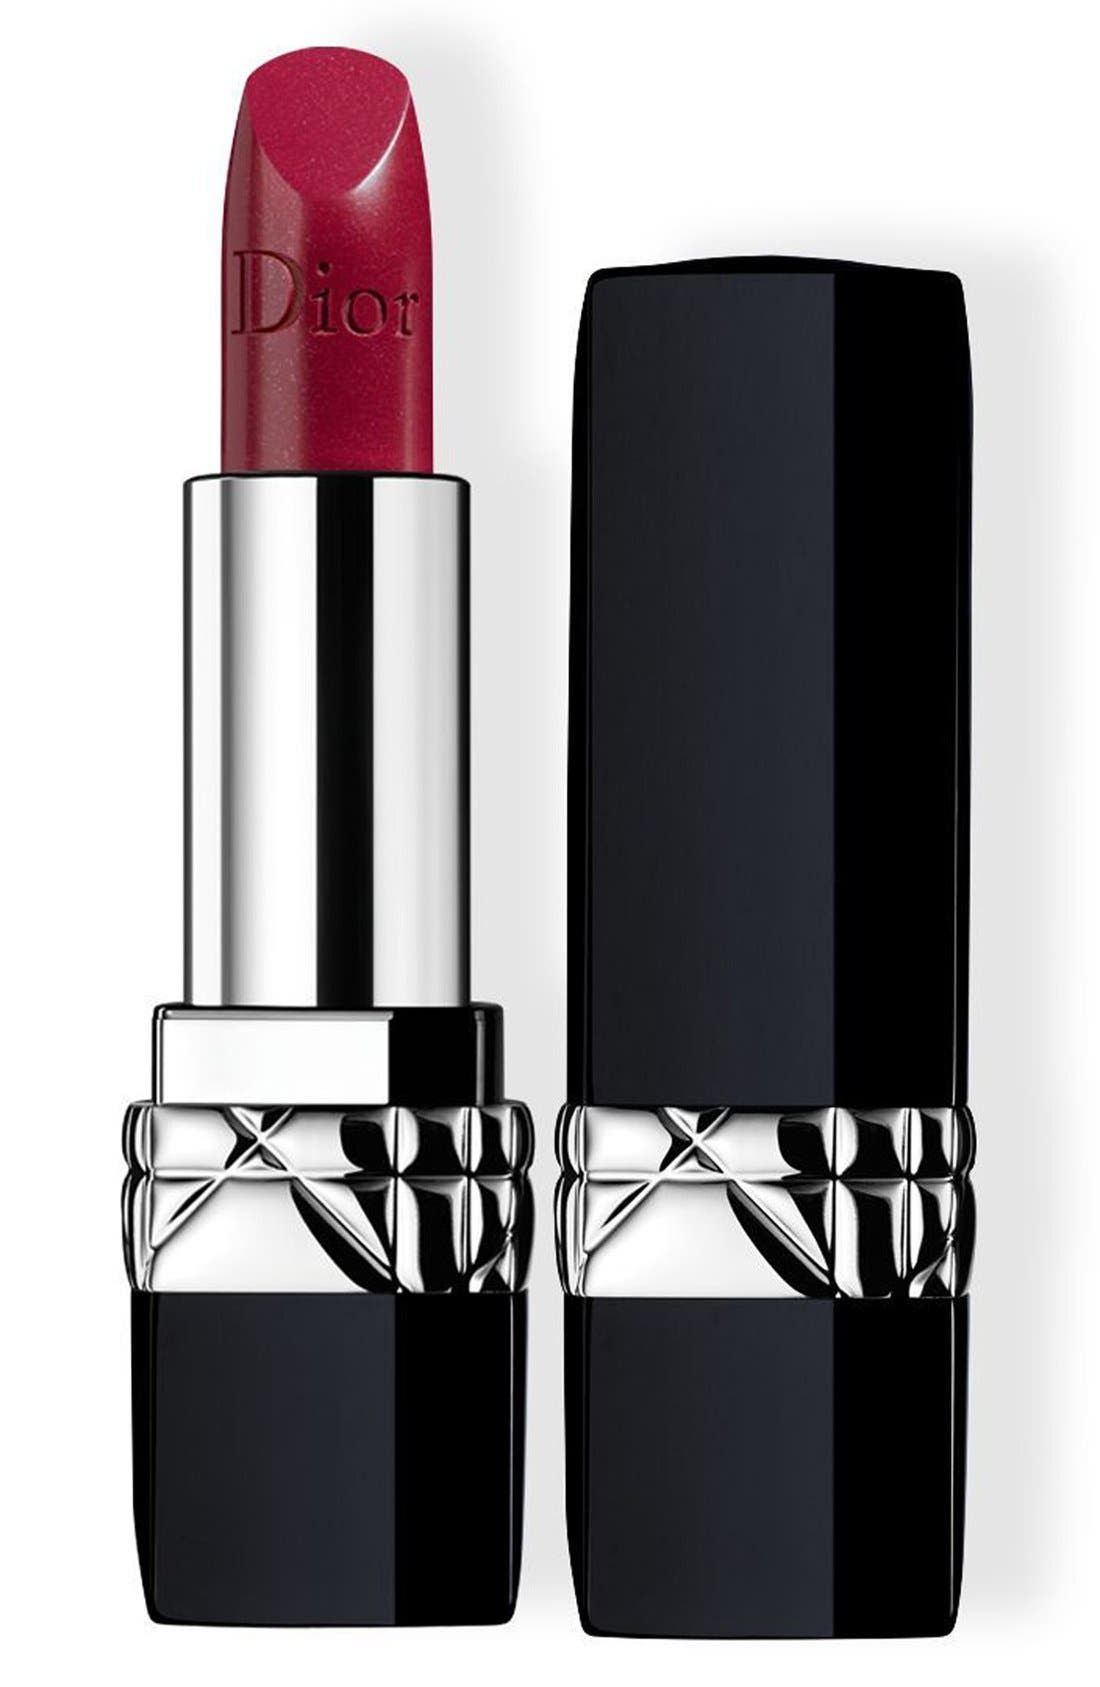 Dior Couture Color Rouge Dior Lipstick - 988 Rialto